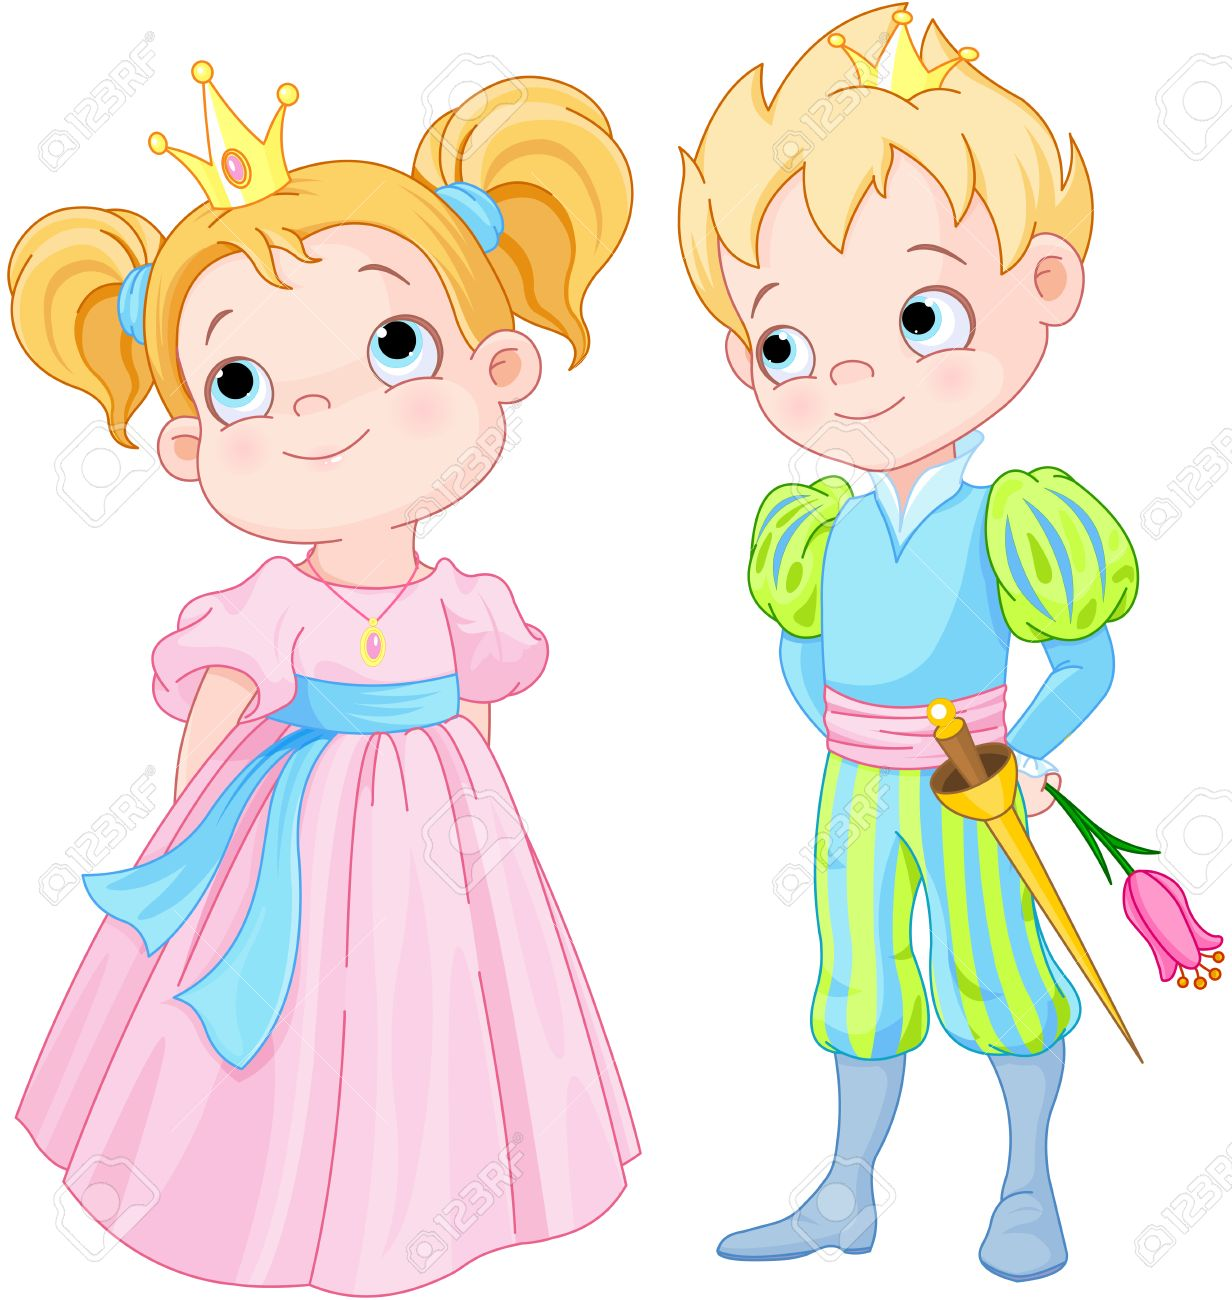 hight resolution of illustration of very cute prince and princess stock vector 35601226